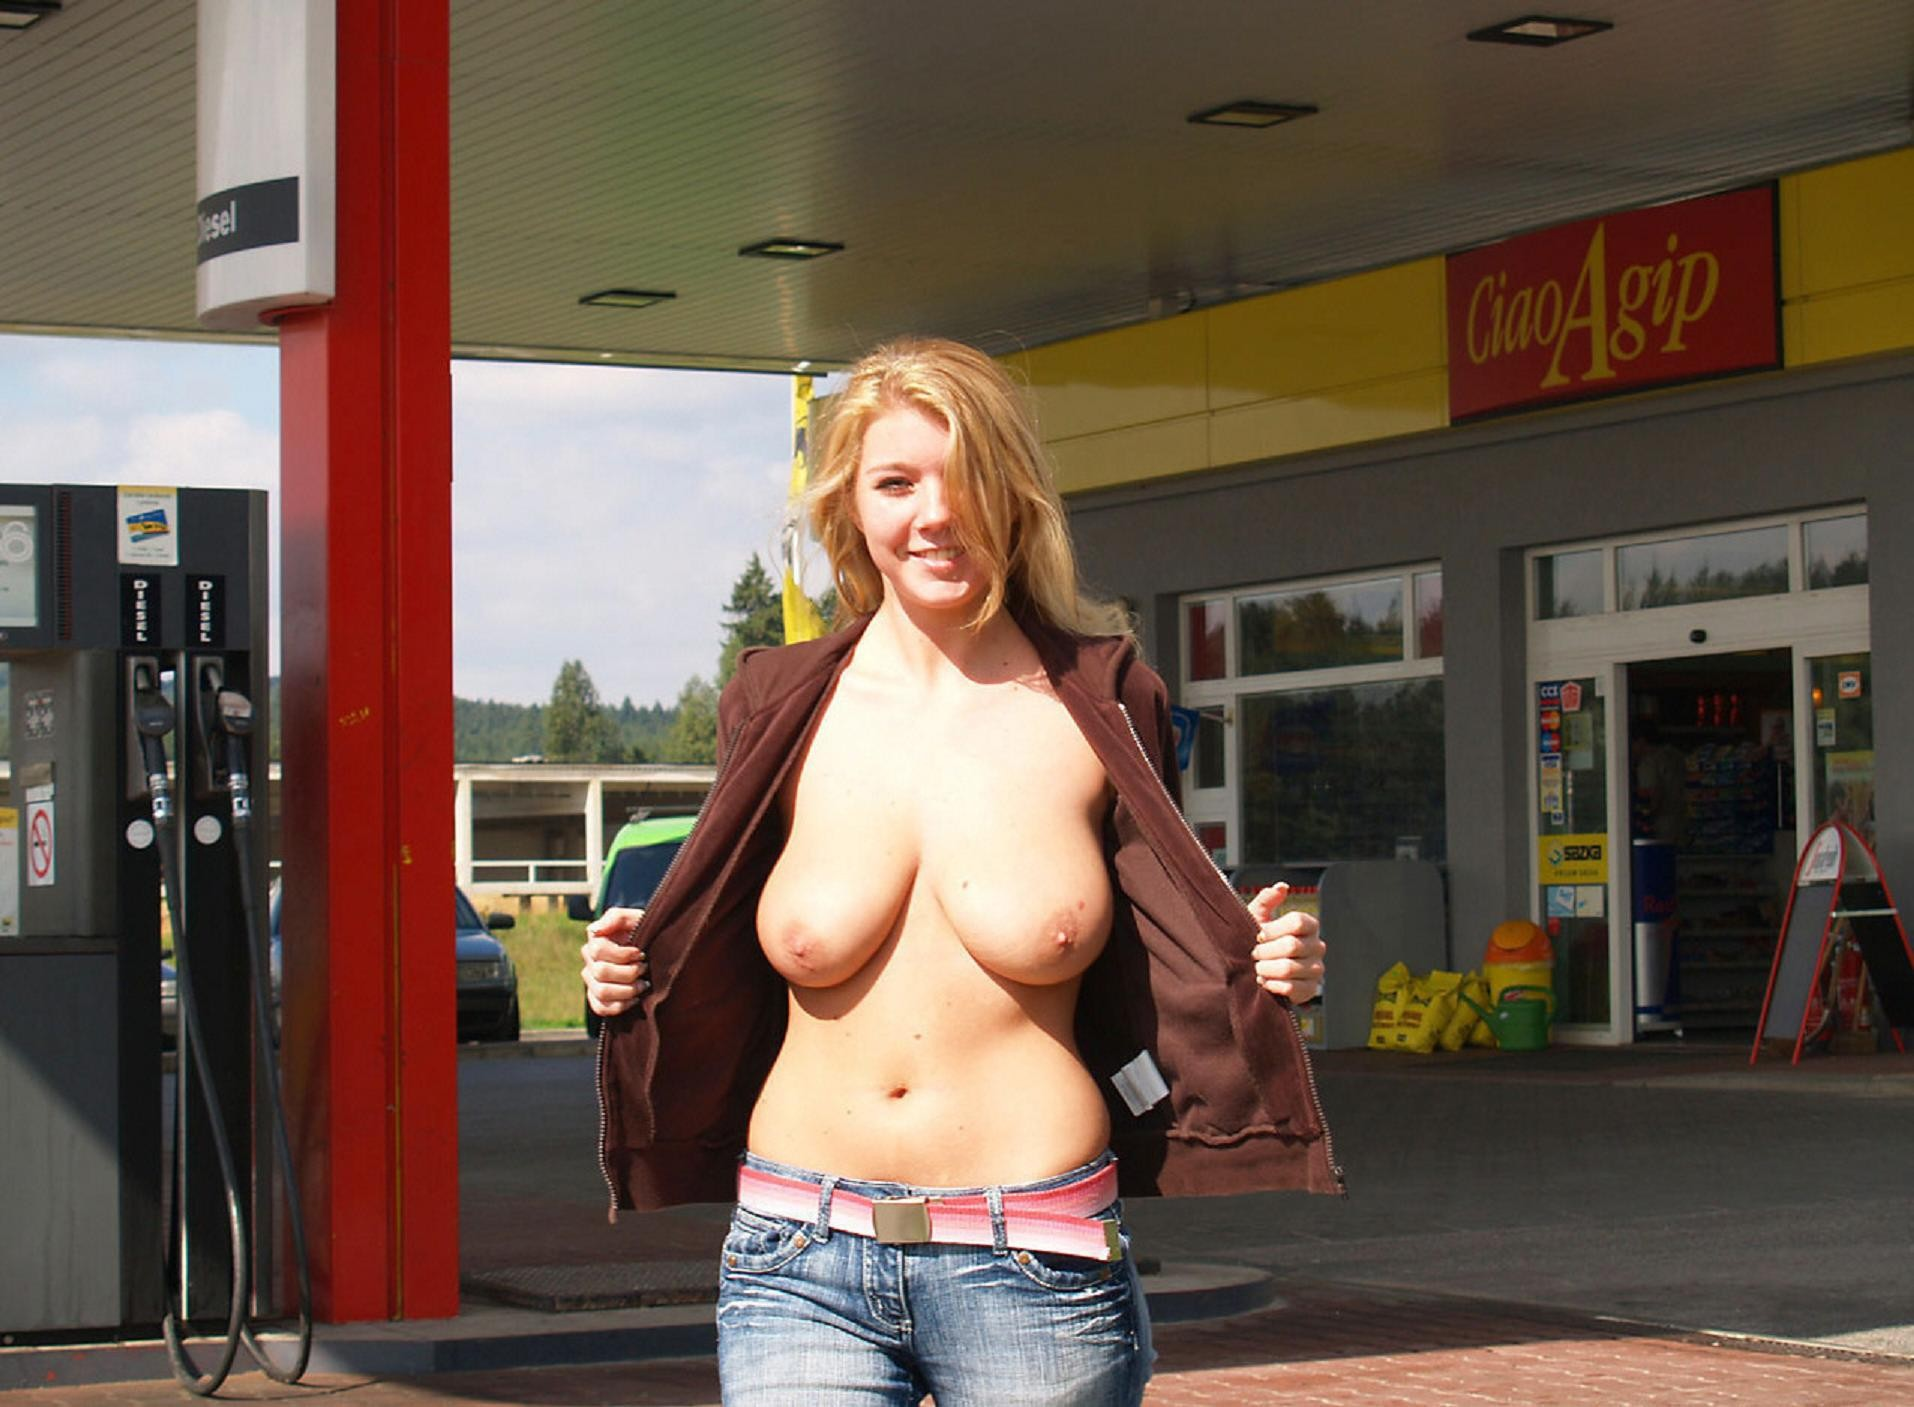 Hips sexy girls flashing in public grace xxx